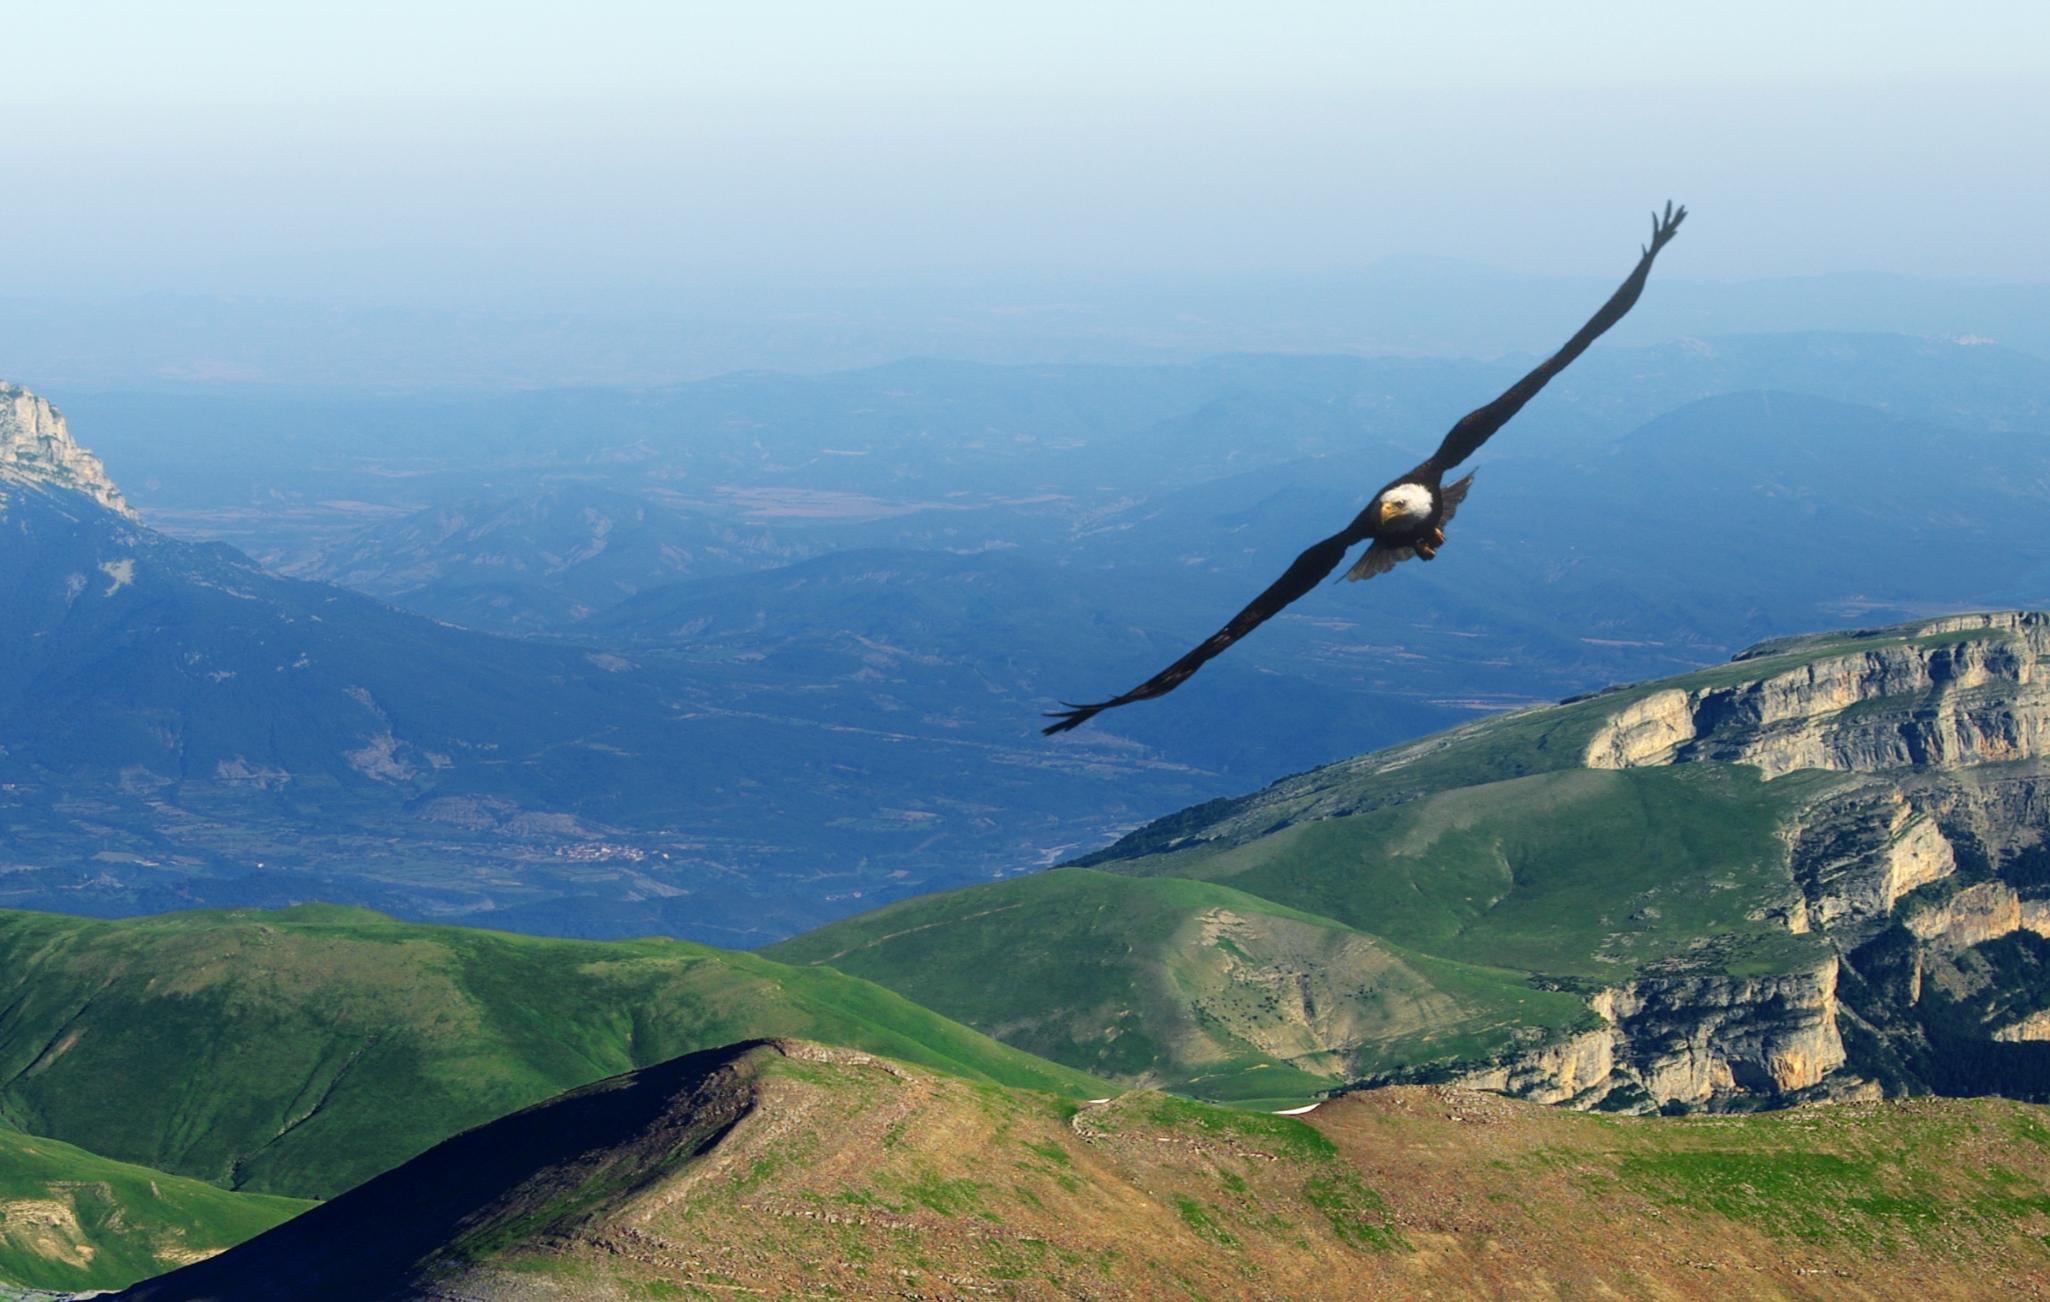 An eagle flying over mountains